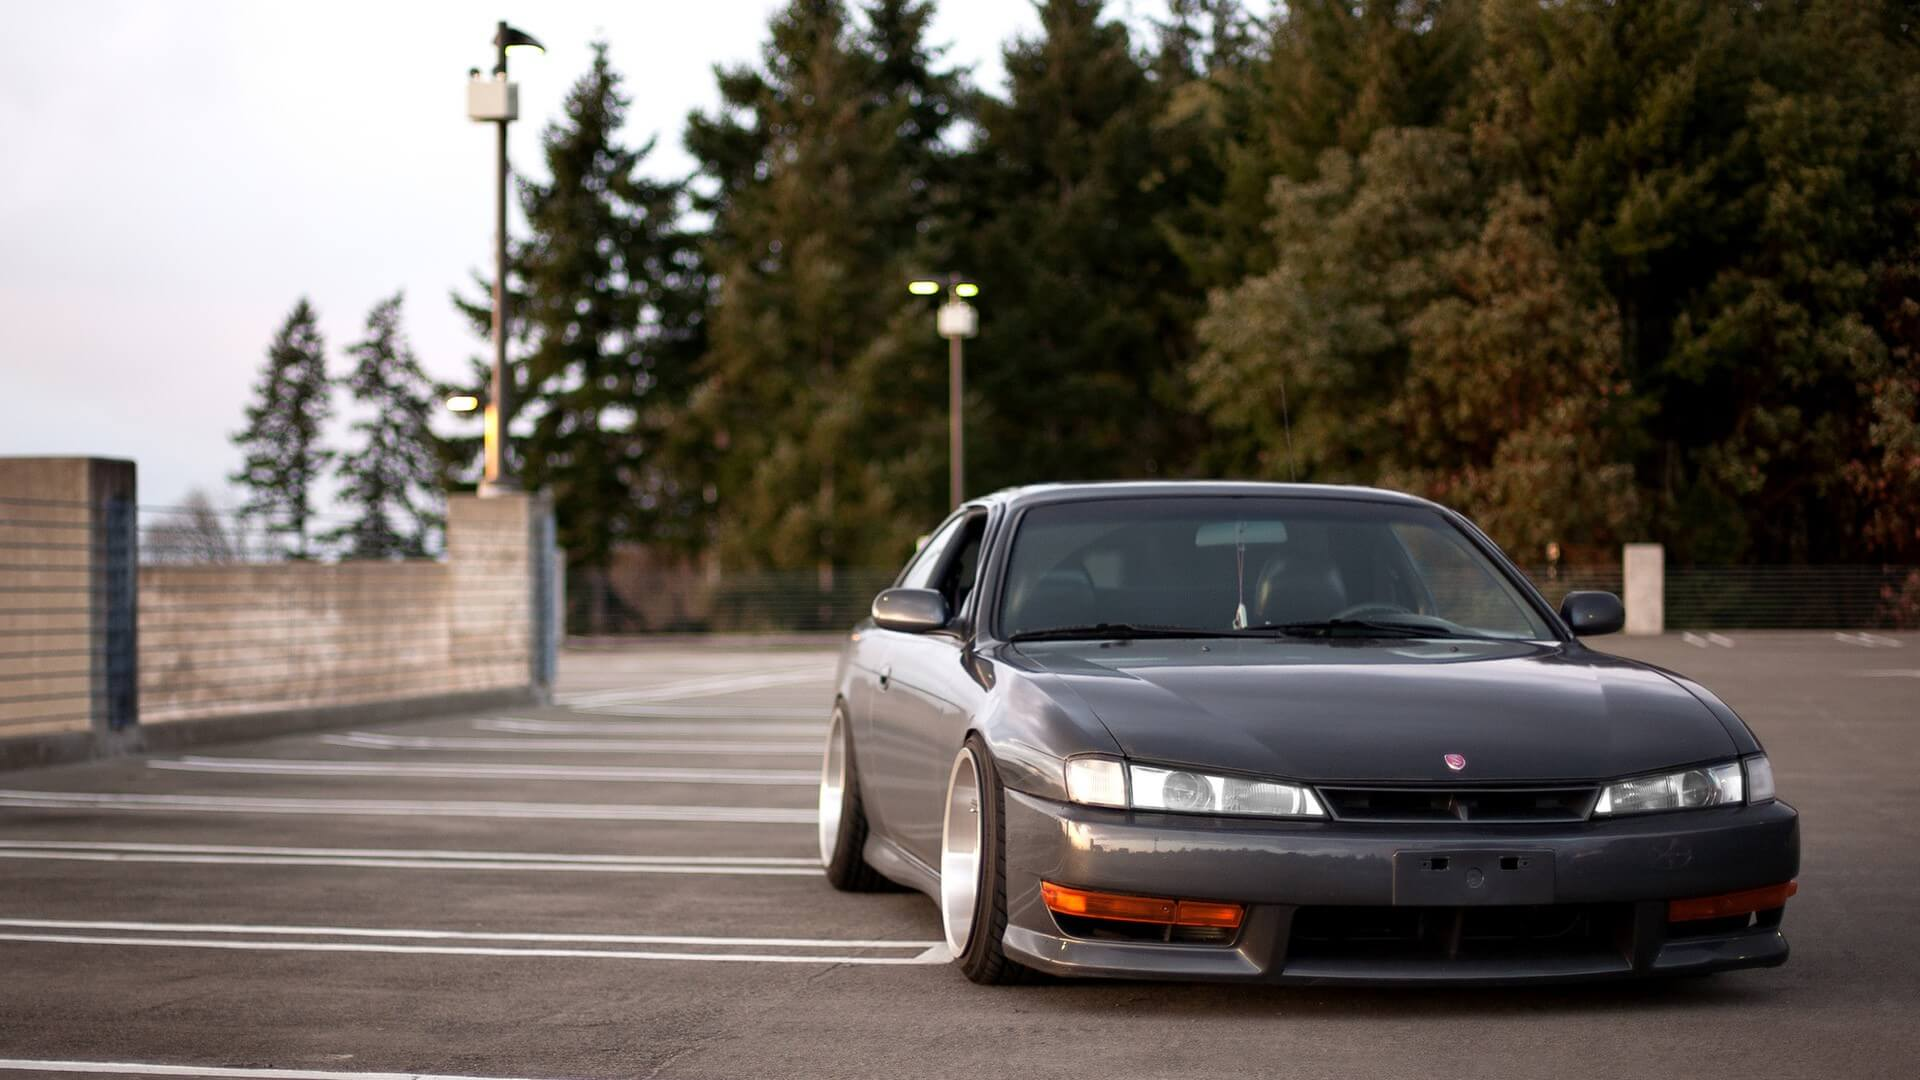 Deep House Girl Wallpaper Nissan Silvia S14 Wallpapers Coches Japoneses